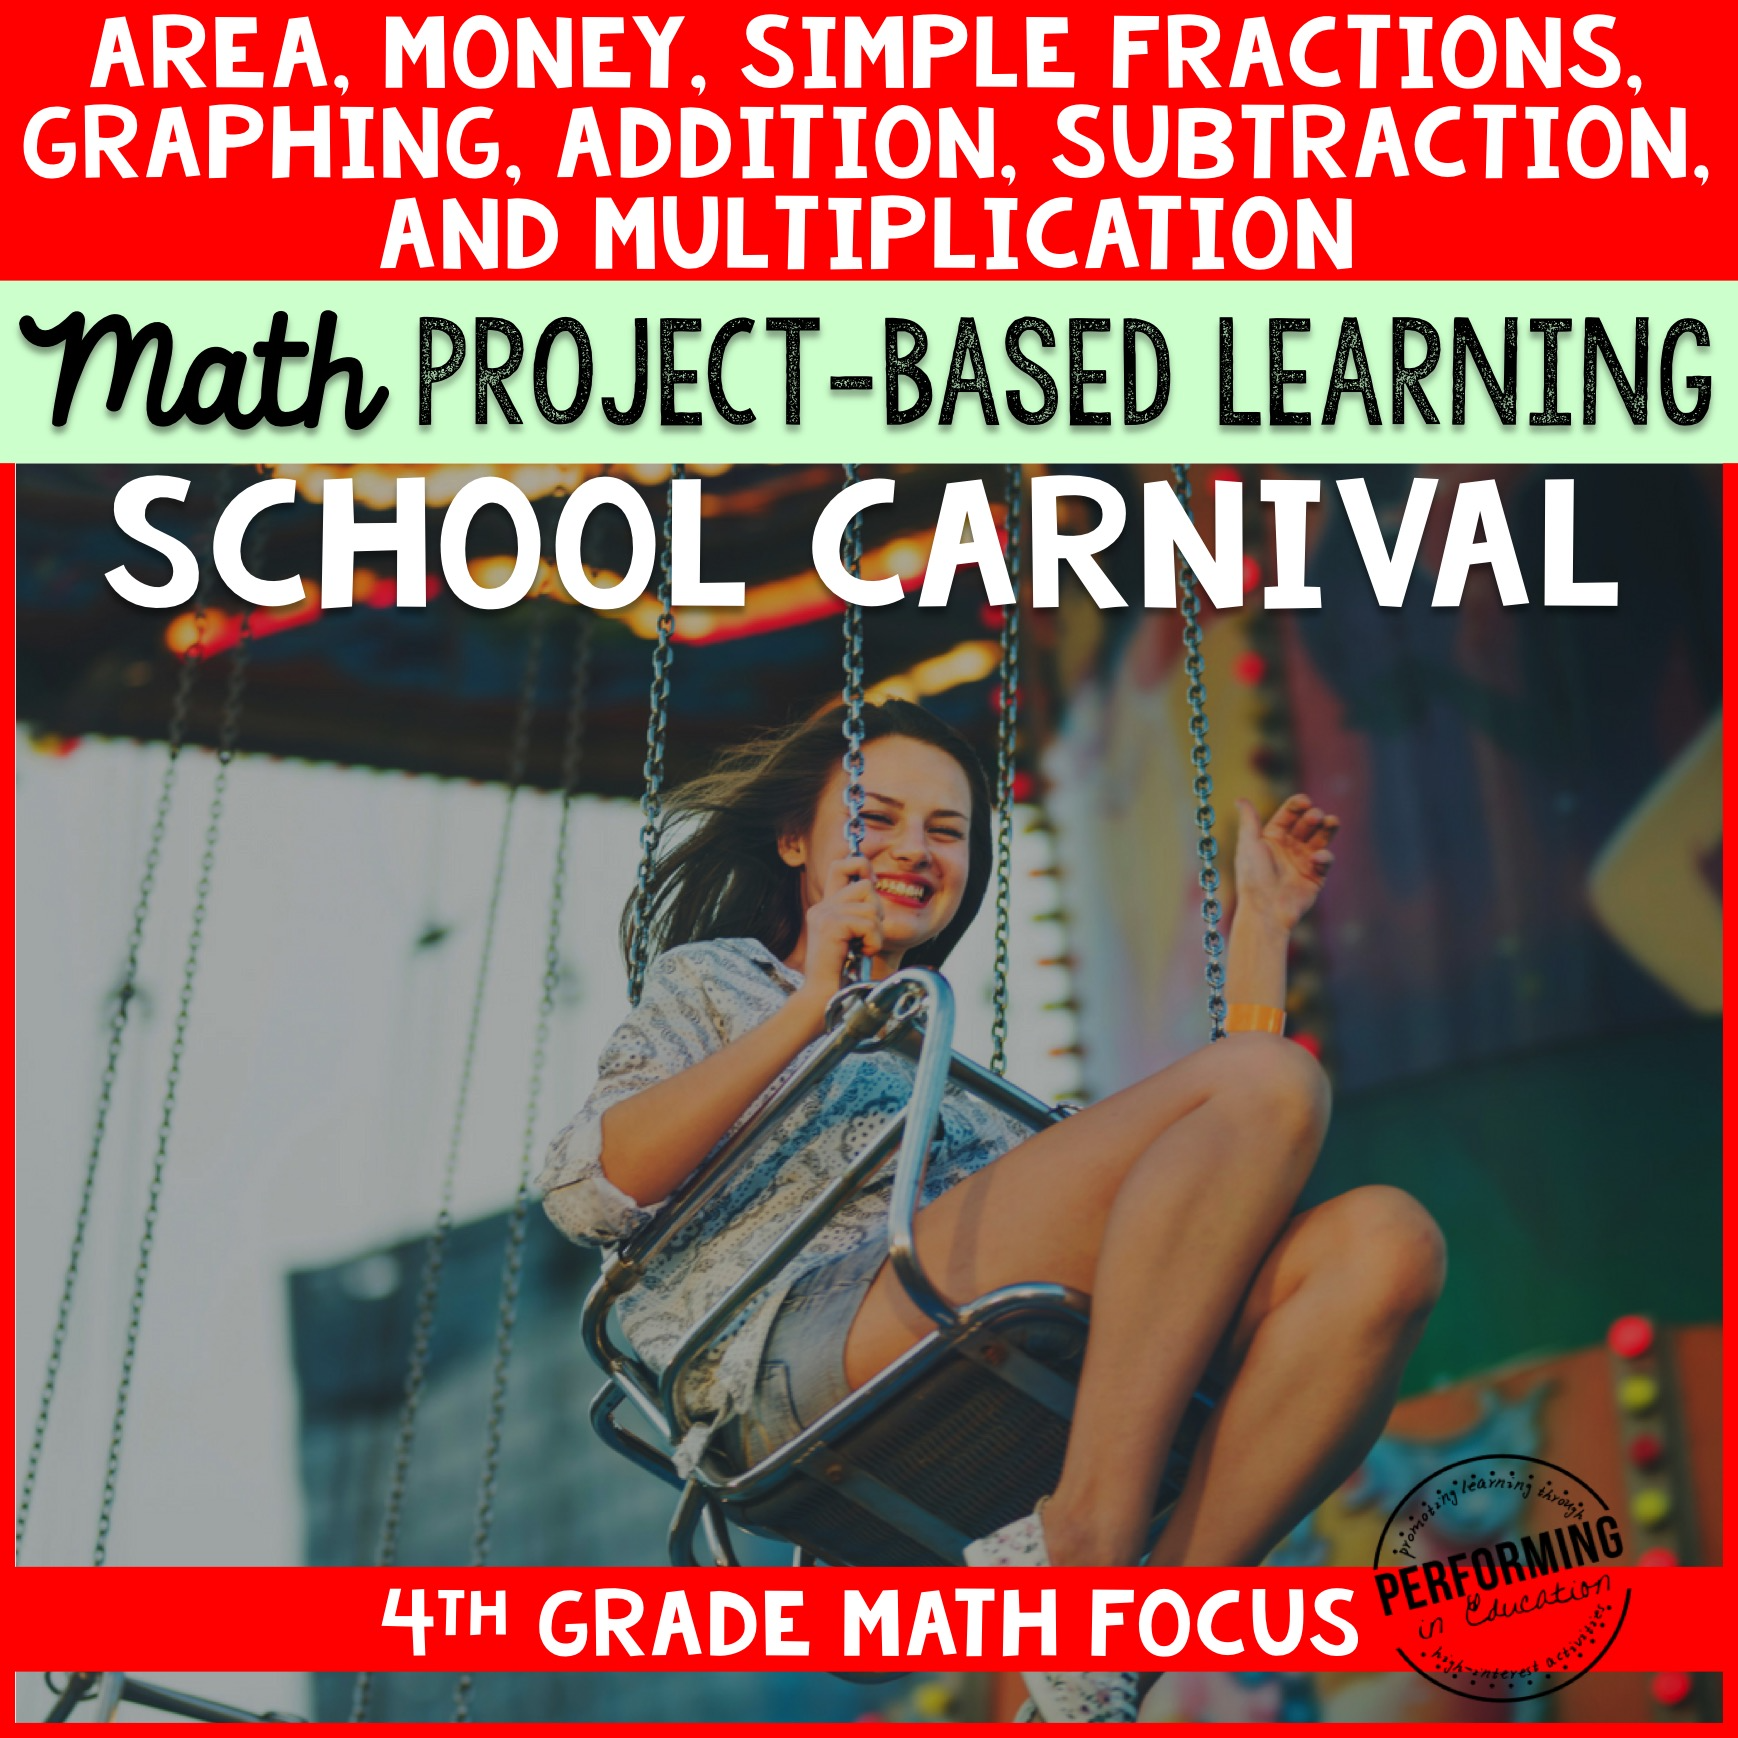 Project Based Learning for 4th Grade Math: School Carnival 00049